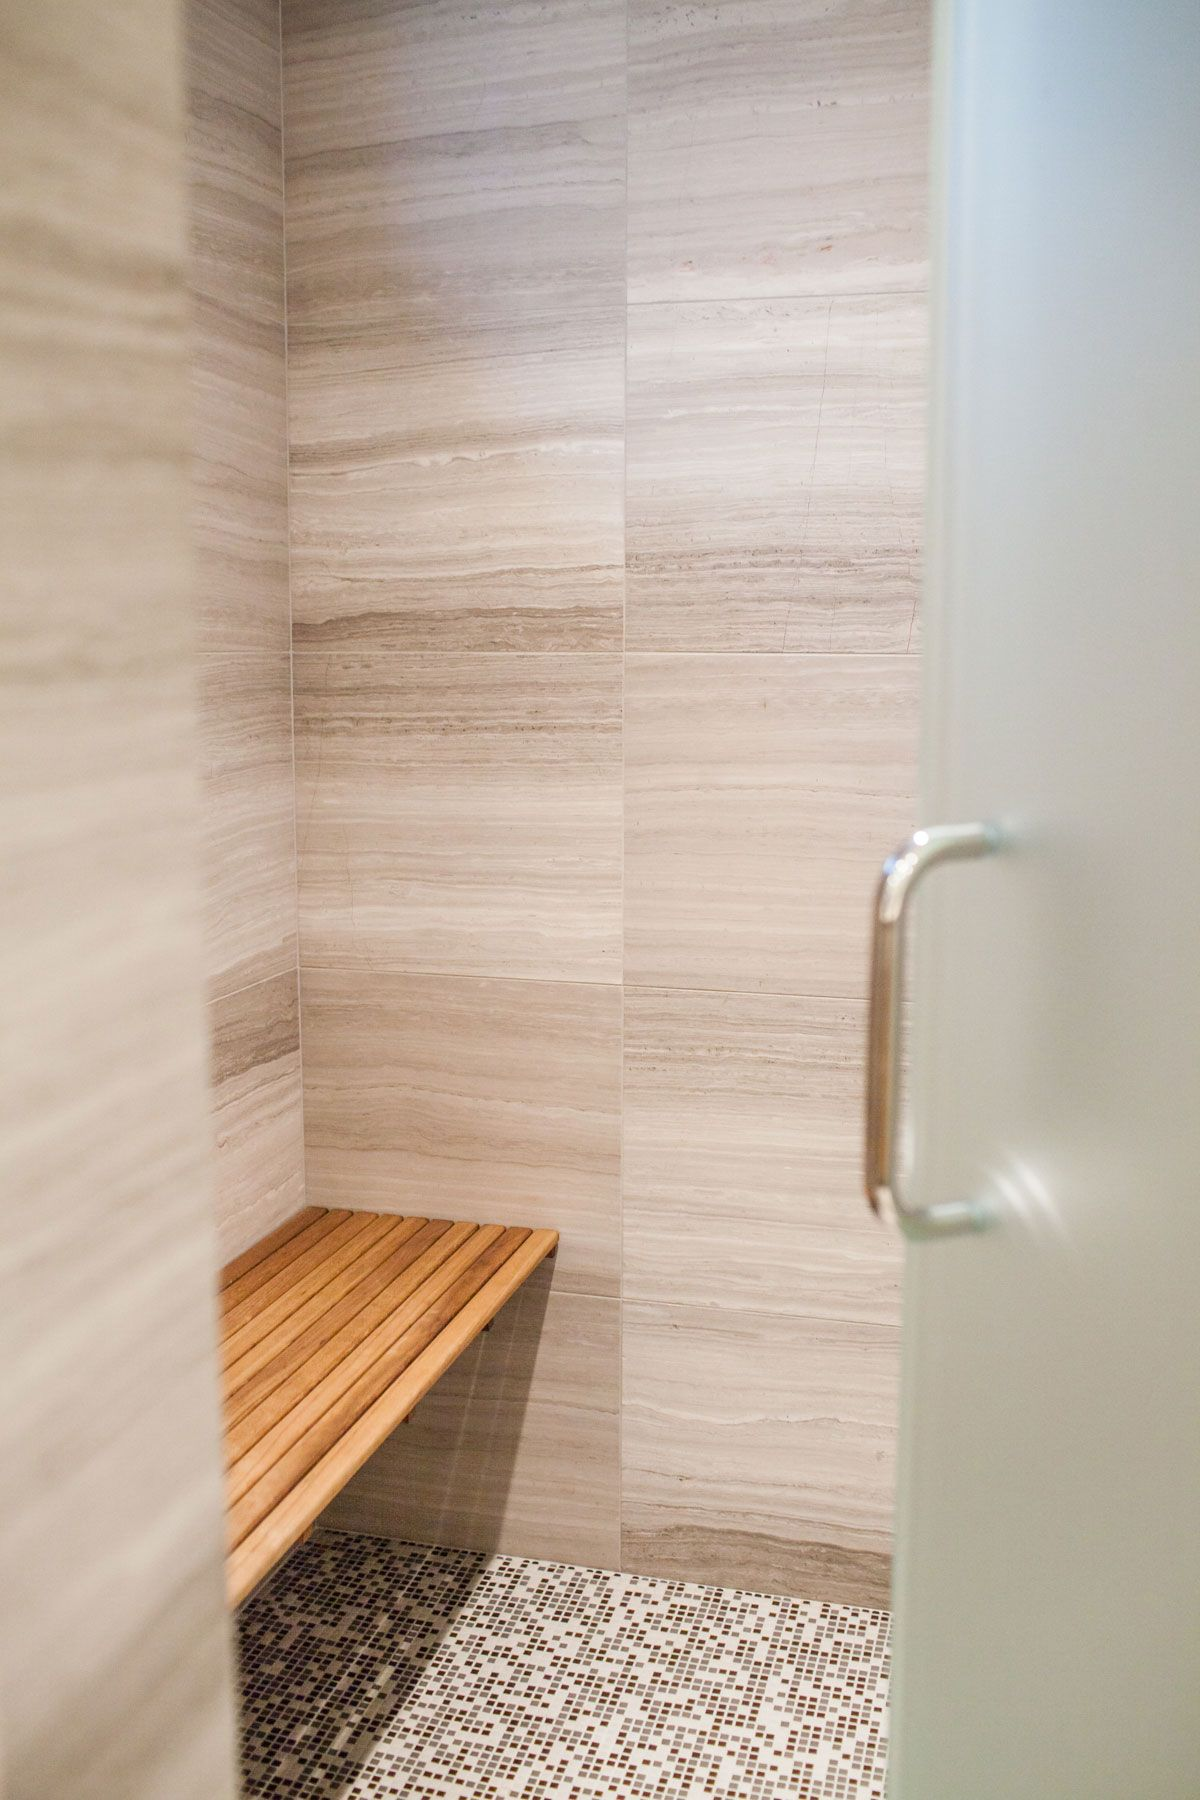 Shower room interior. Large stone tiles on the wall, mosaic tile ...